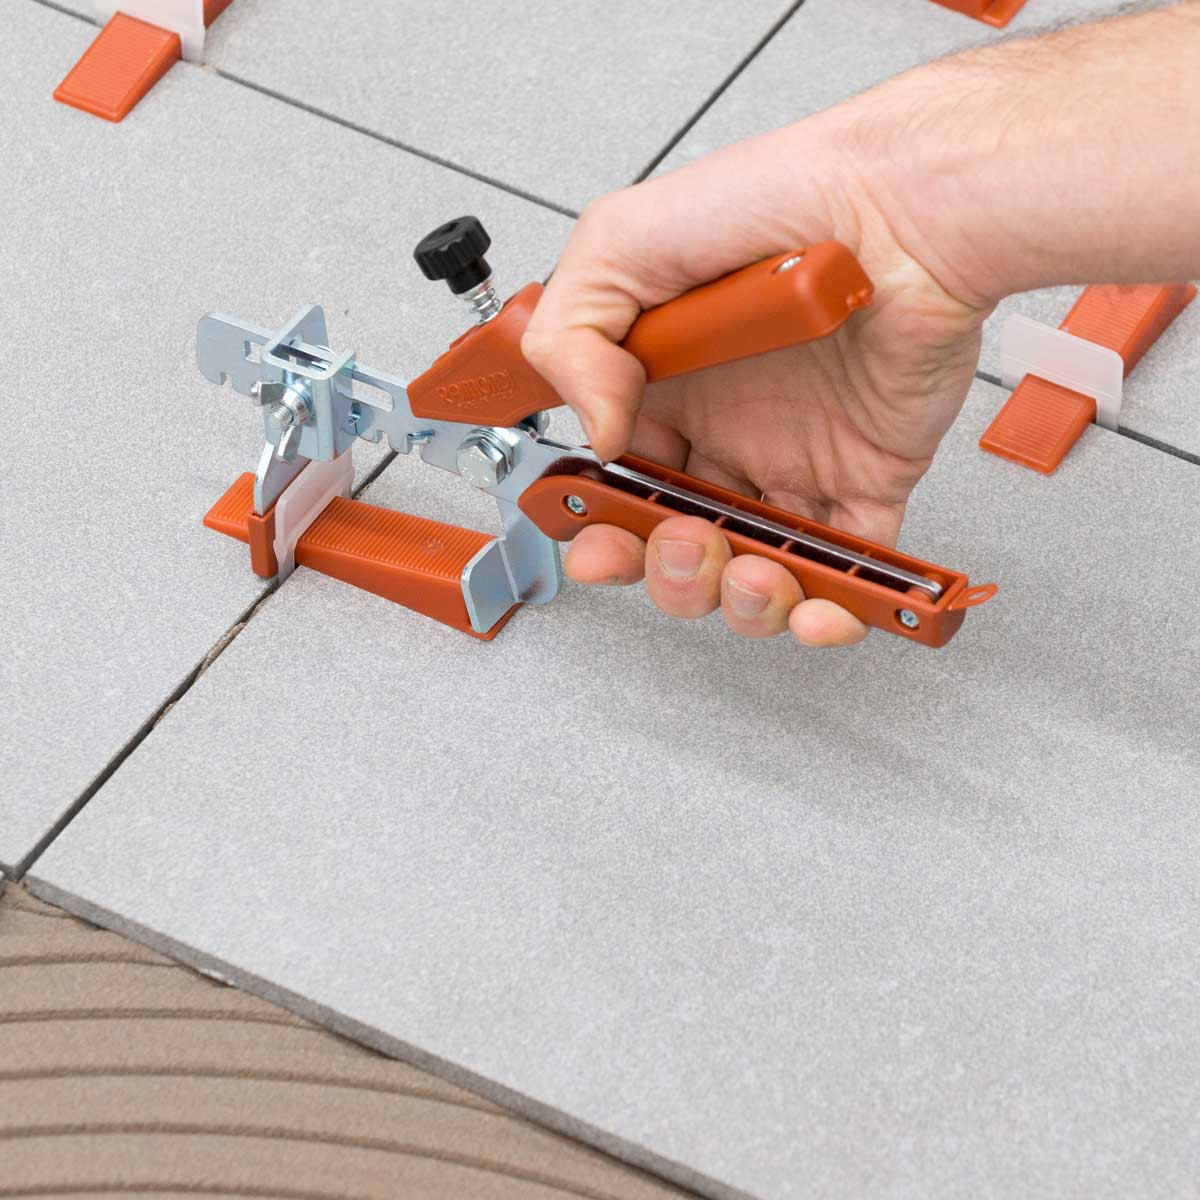 installing raimondi wedge with floor pliers